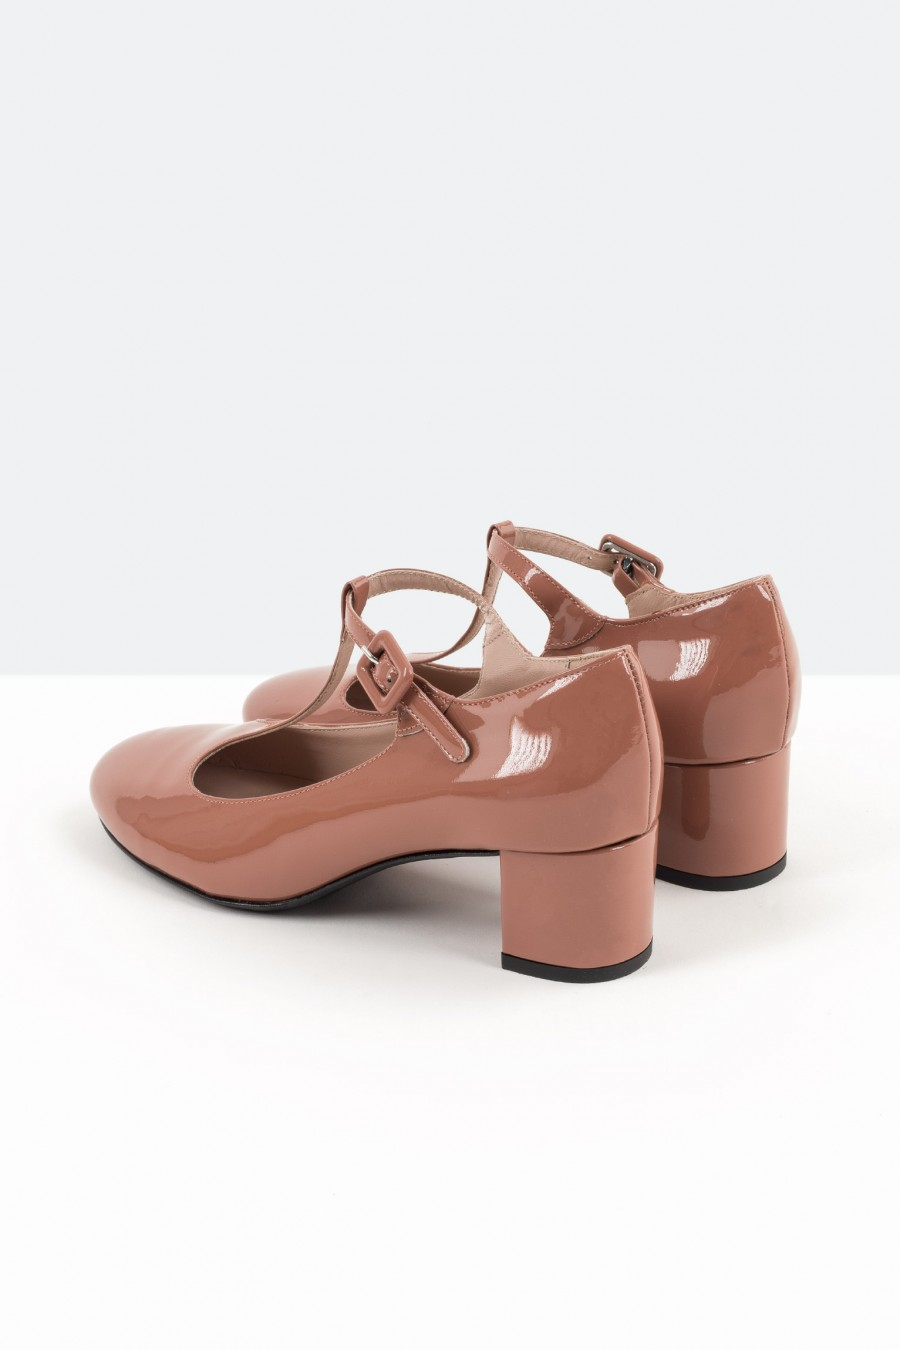 Dusty pink bebè shoes with covered buckle